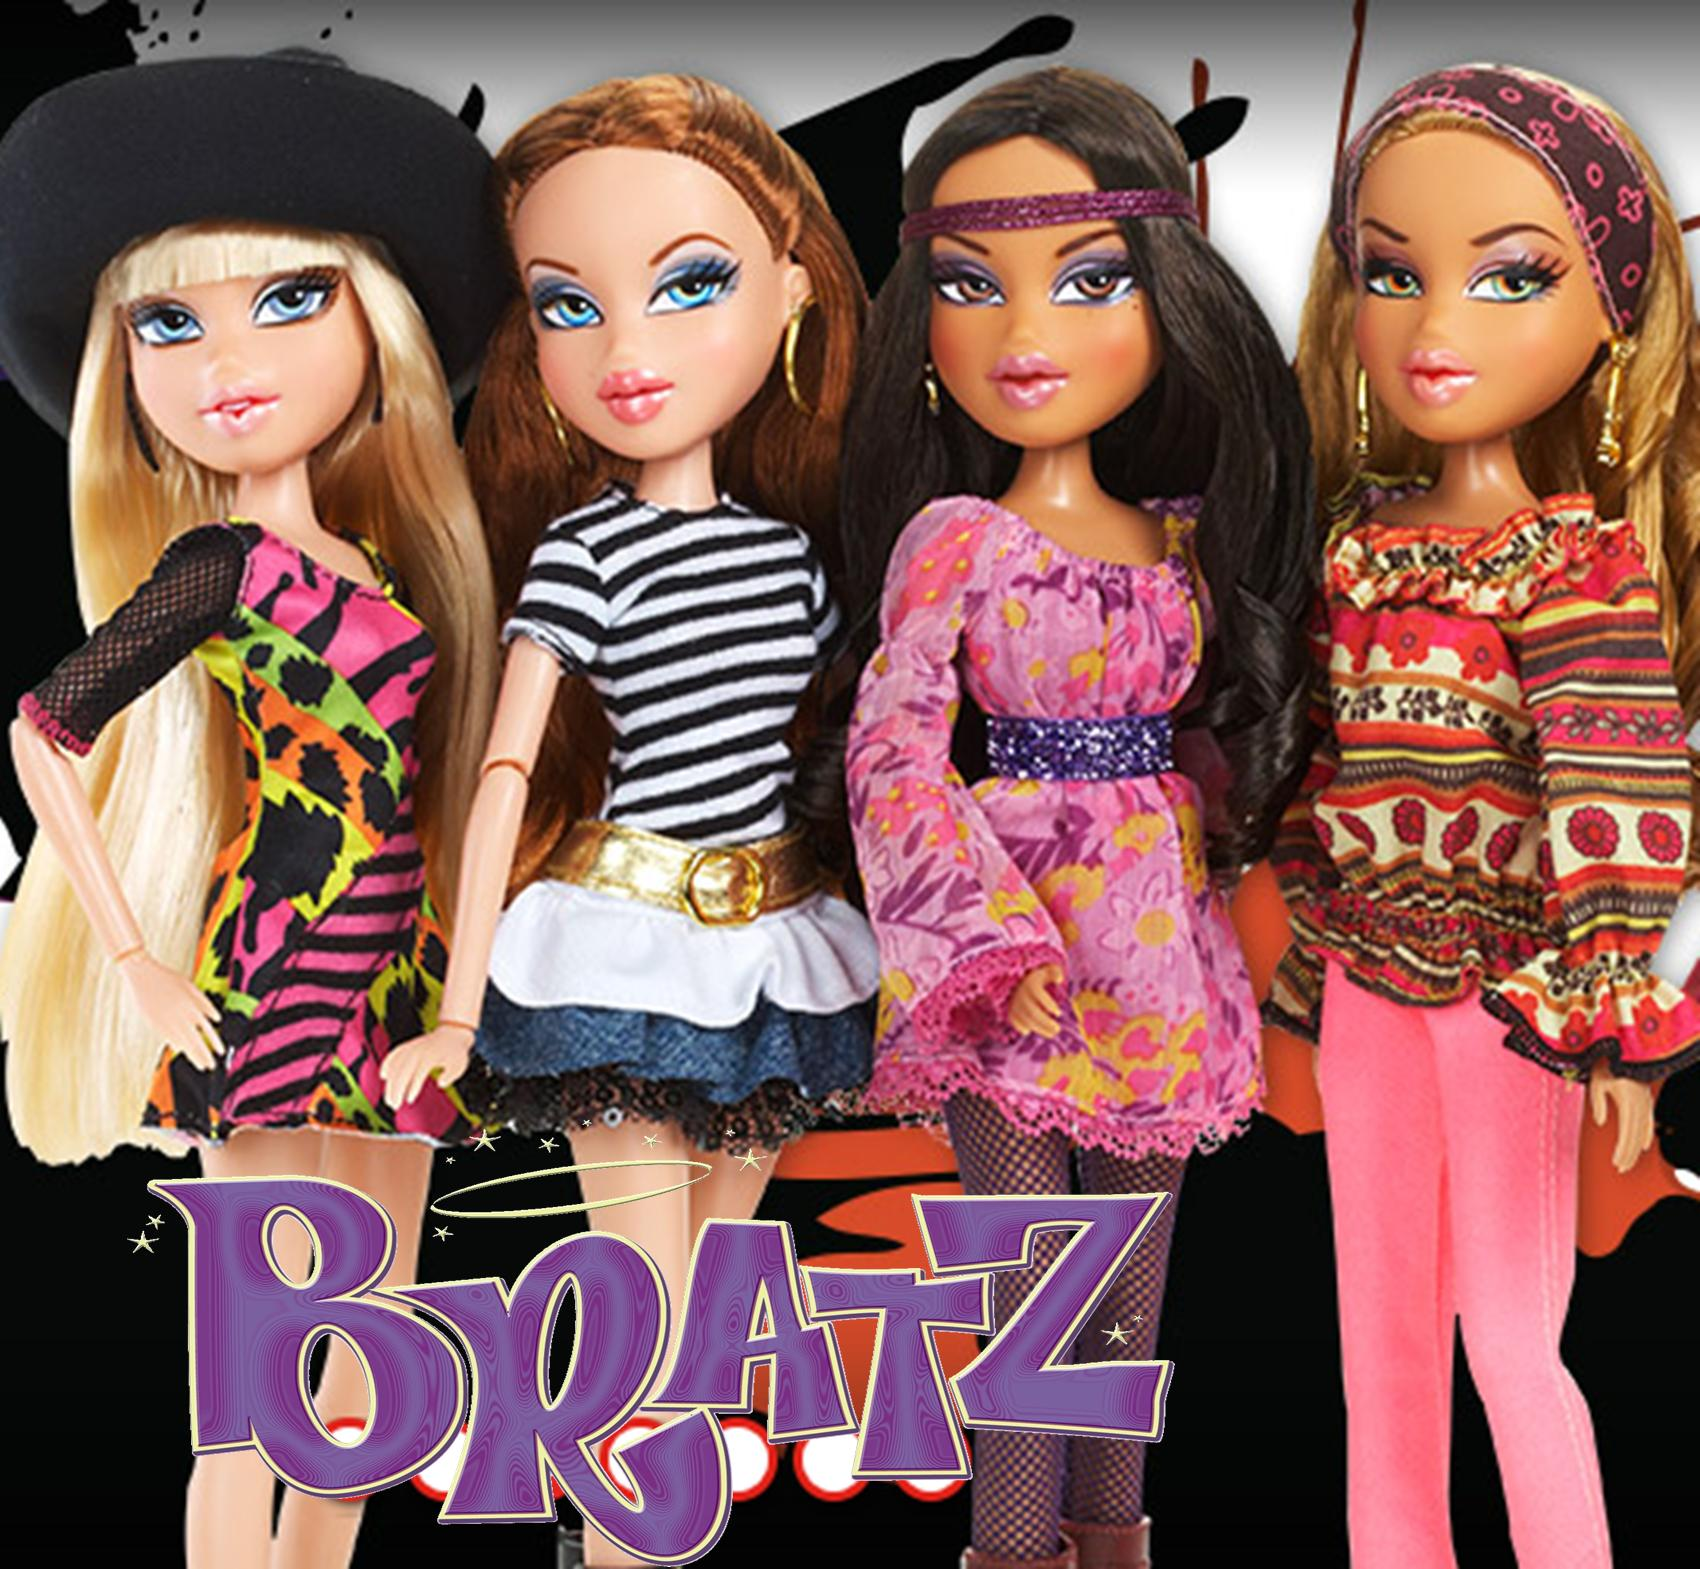 Bratz film deutsch stream